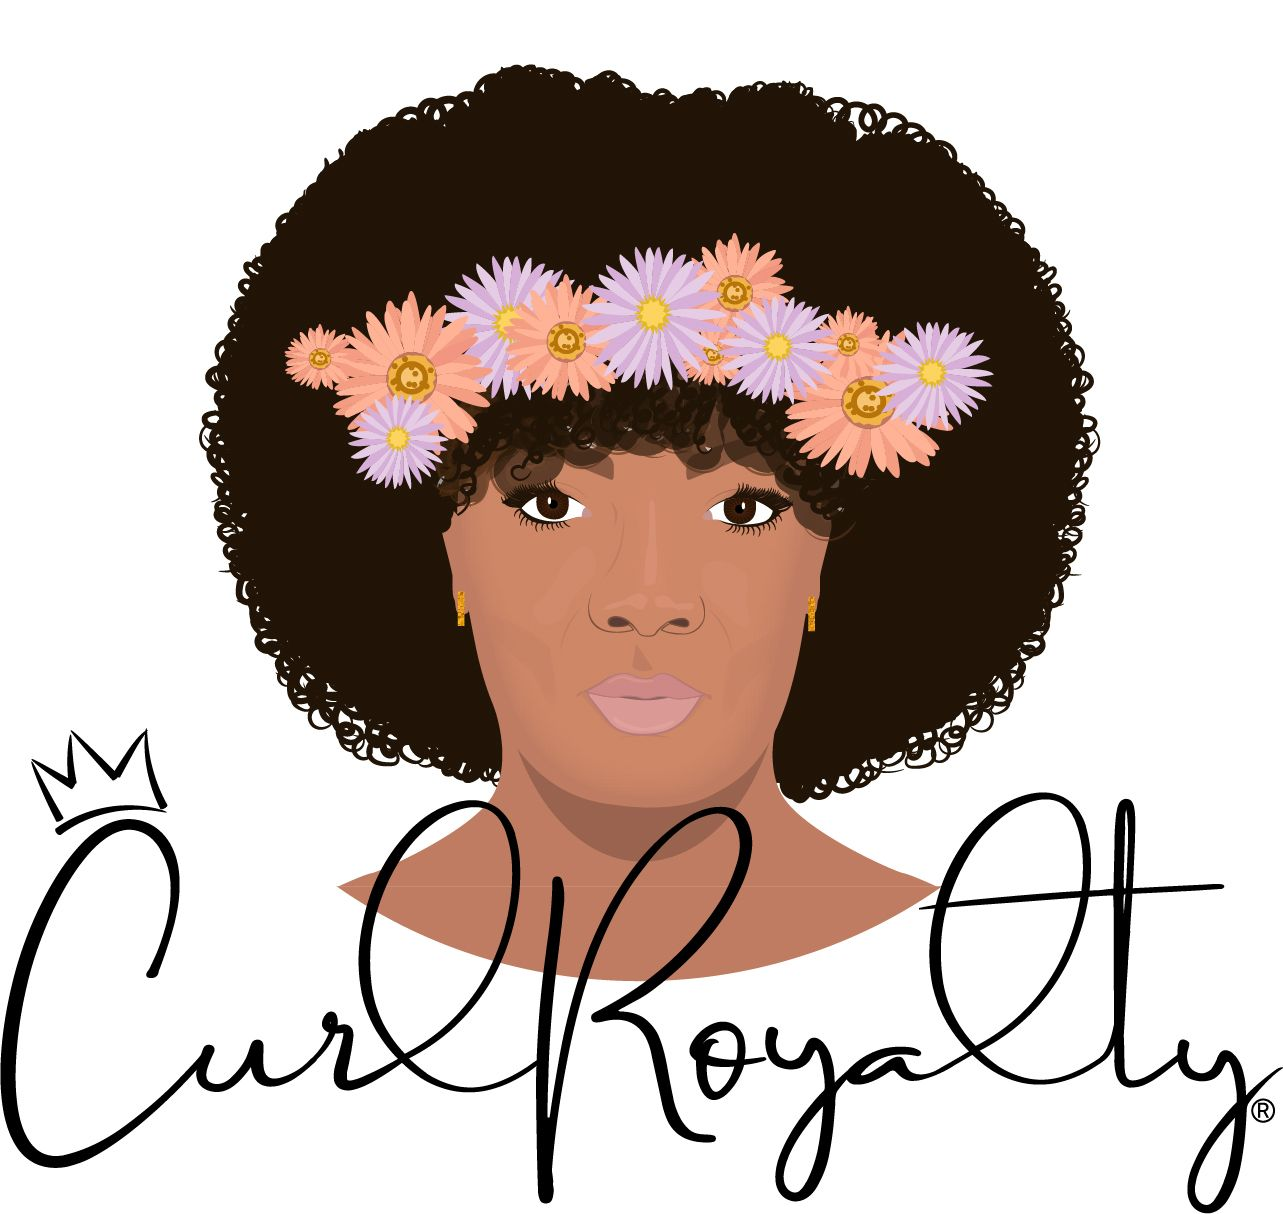 Be adventurous, unique, bold & fearless. Love your crown of curls 👑 #CurlRoyalty #natural #naturalhairstyles #naturalhair #naturalcurlyhair #blackgirlmagic